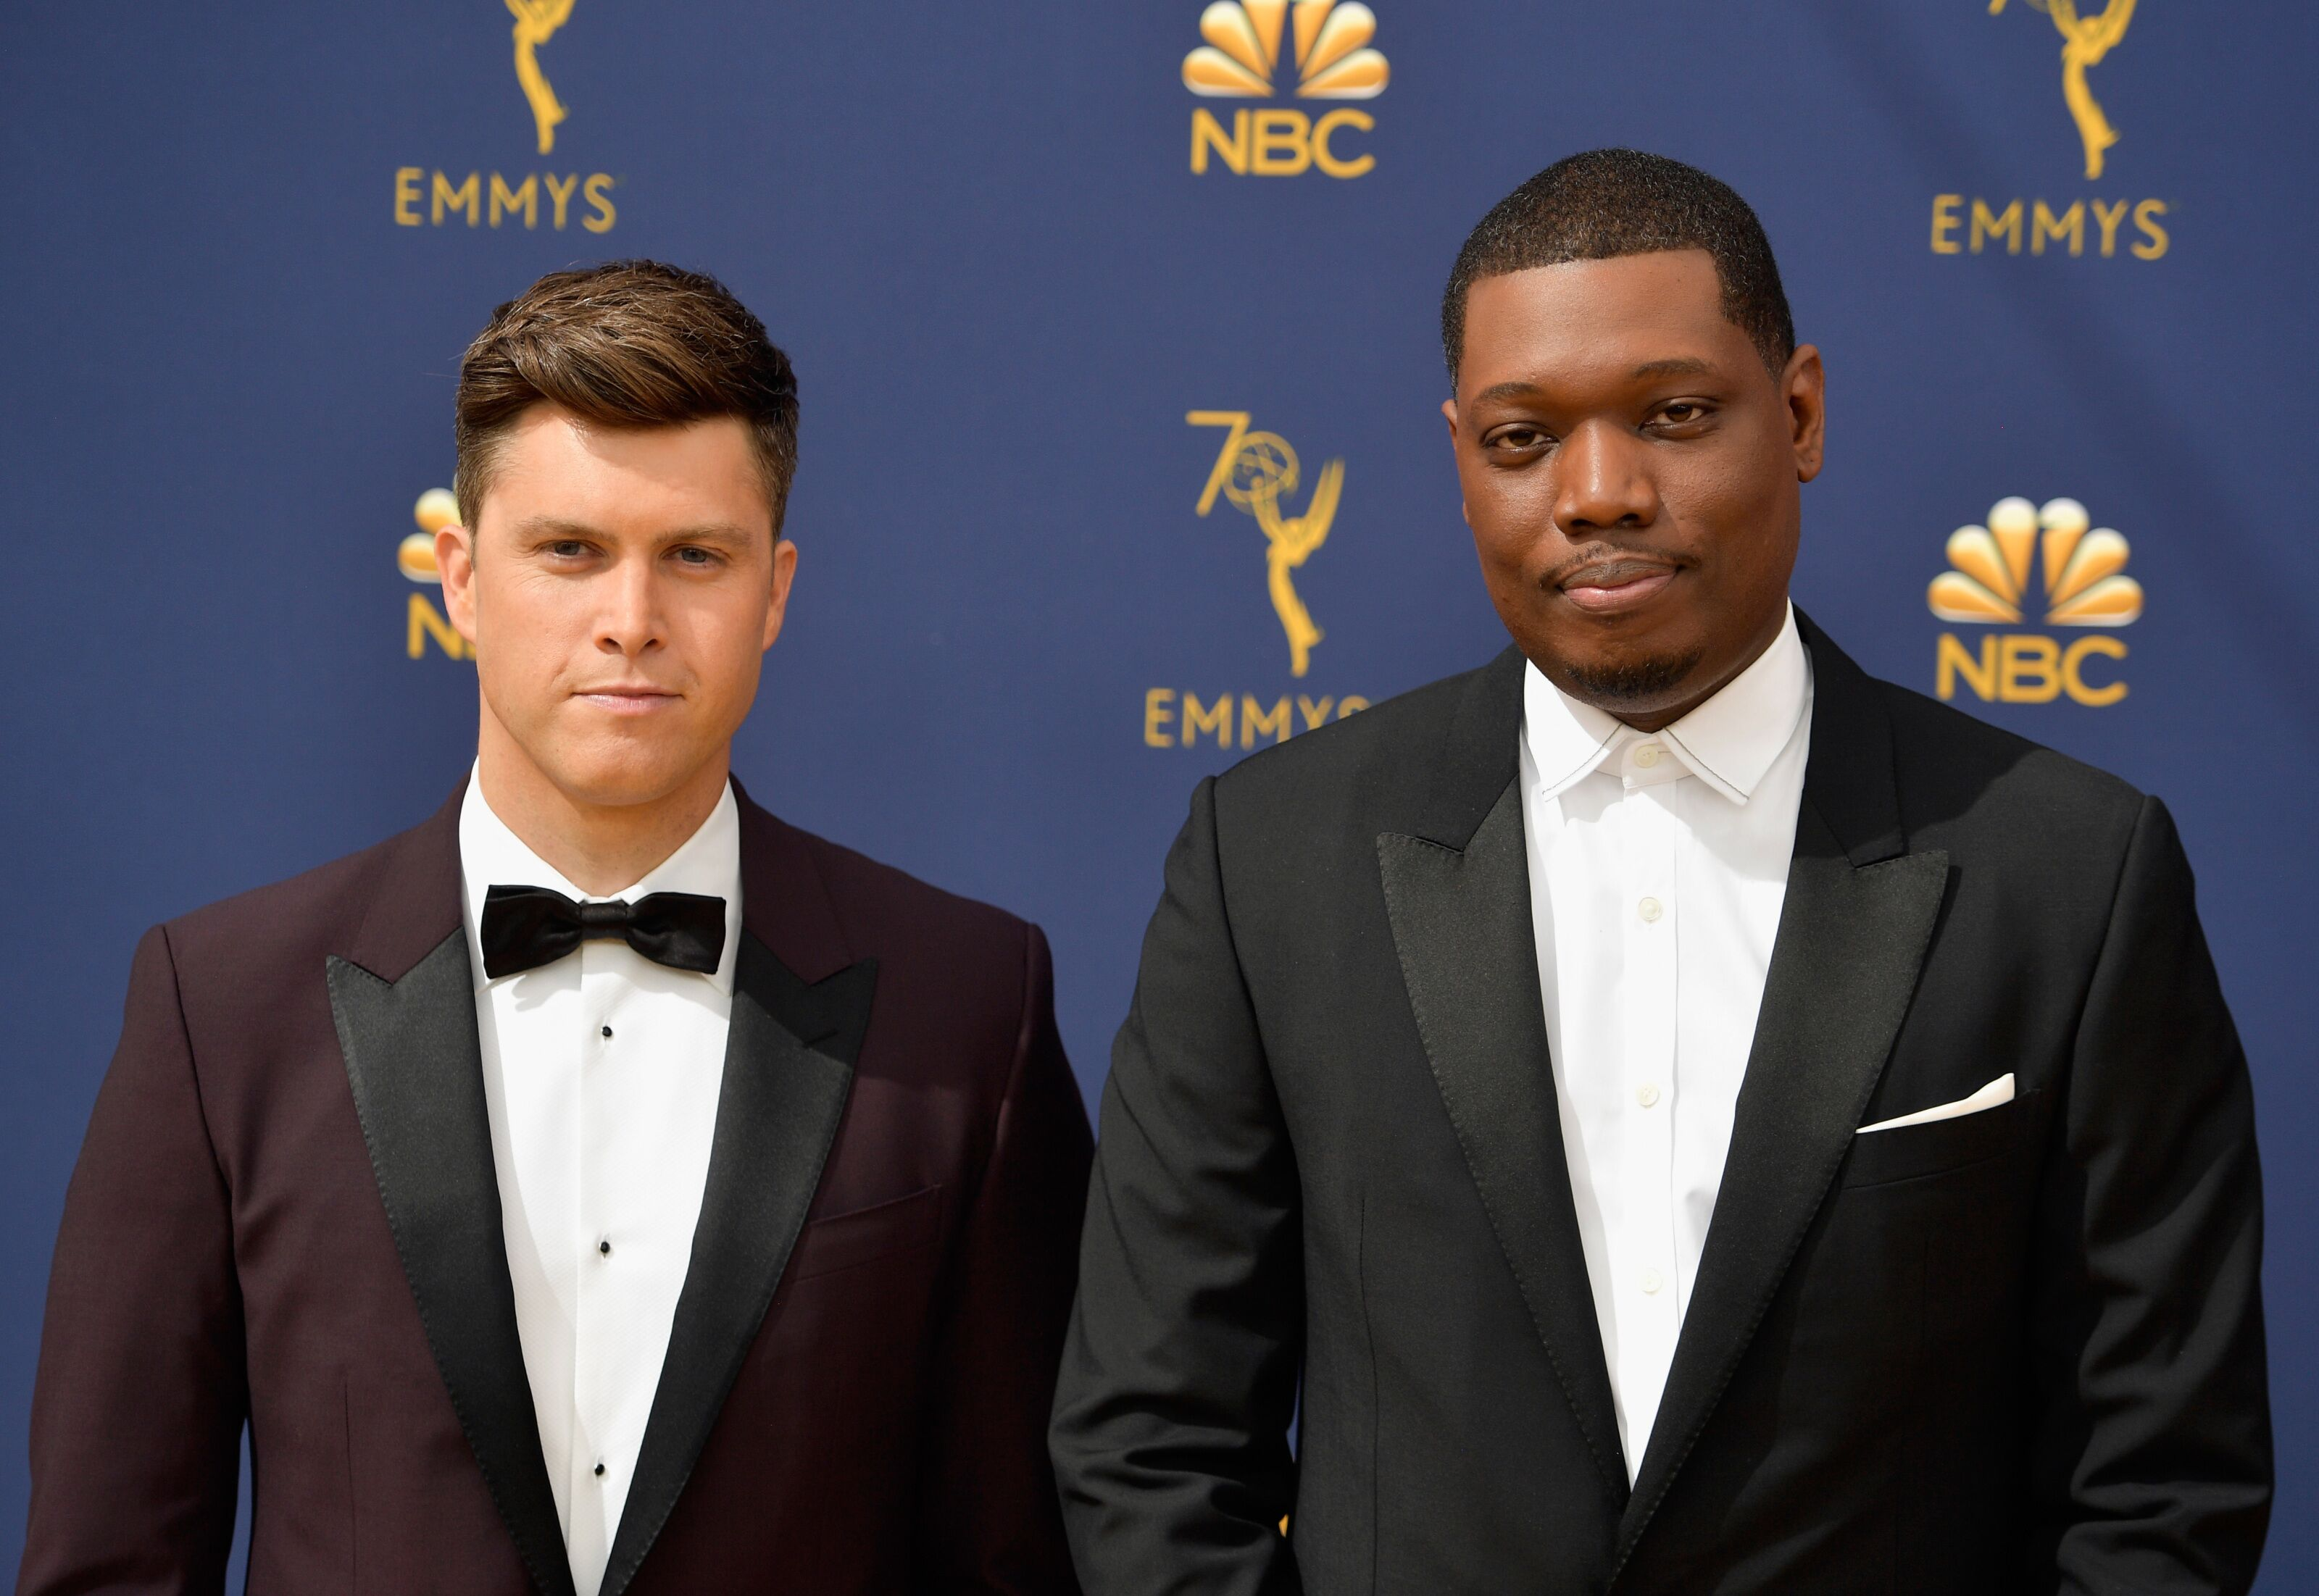 Michael Che has big plans for Colin Jost's bachelor party